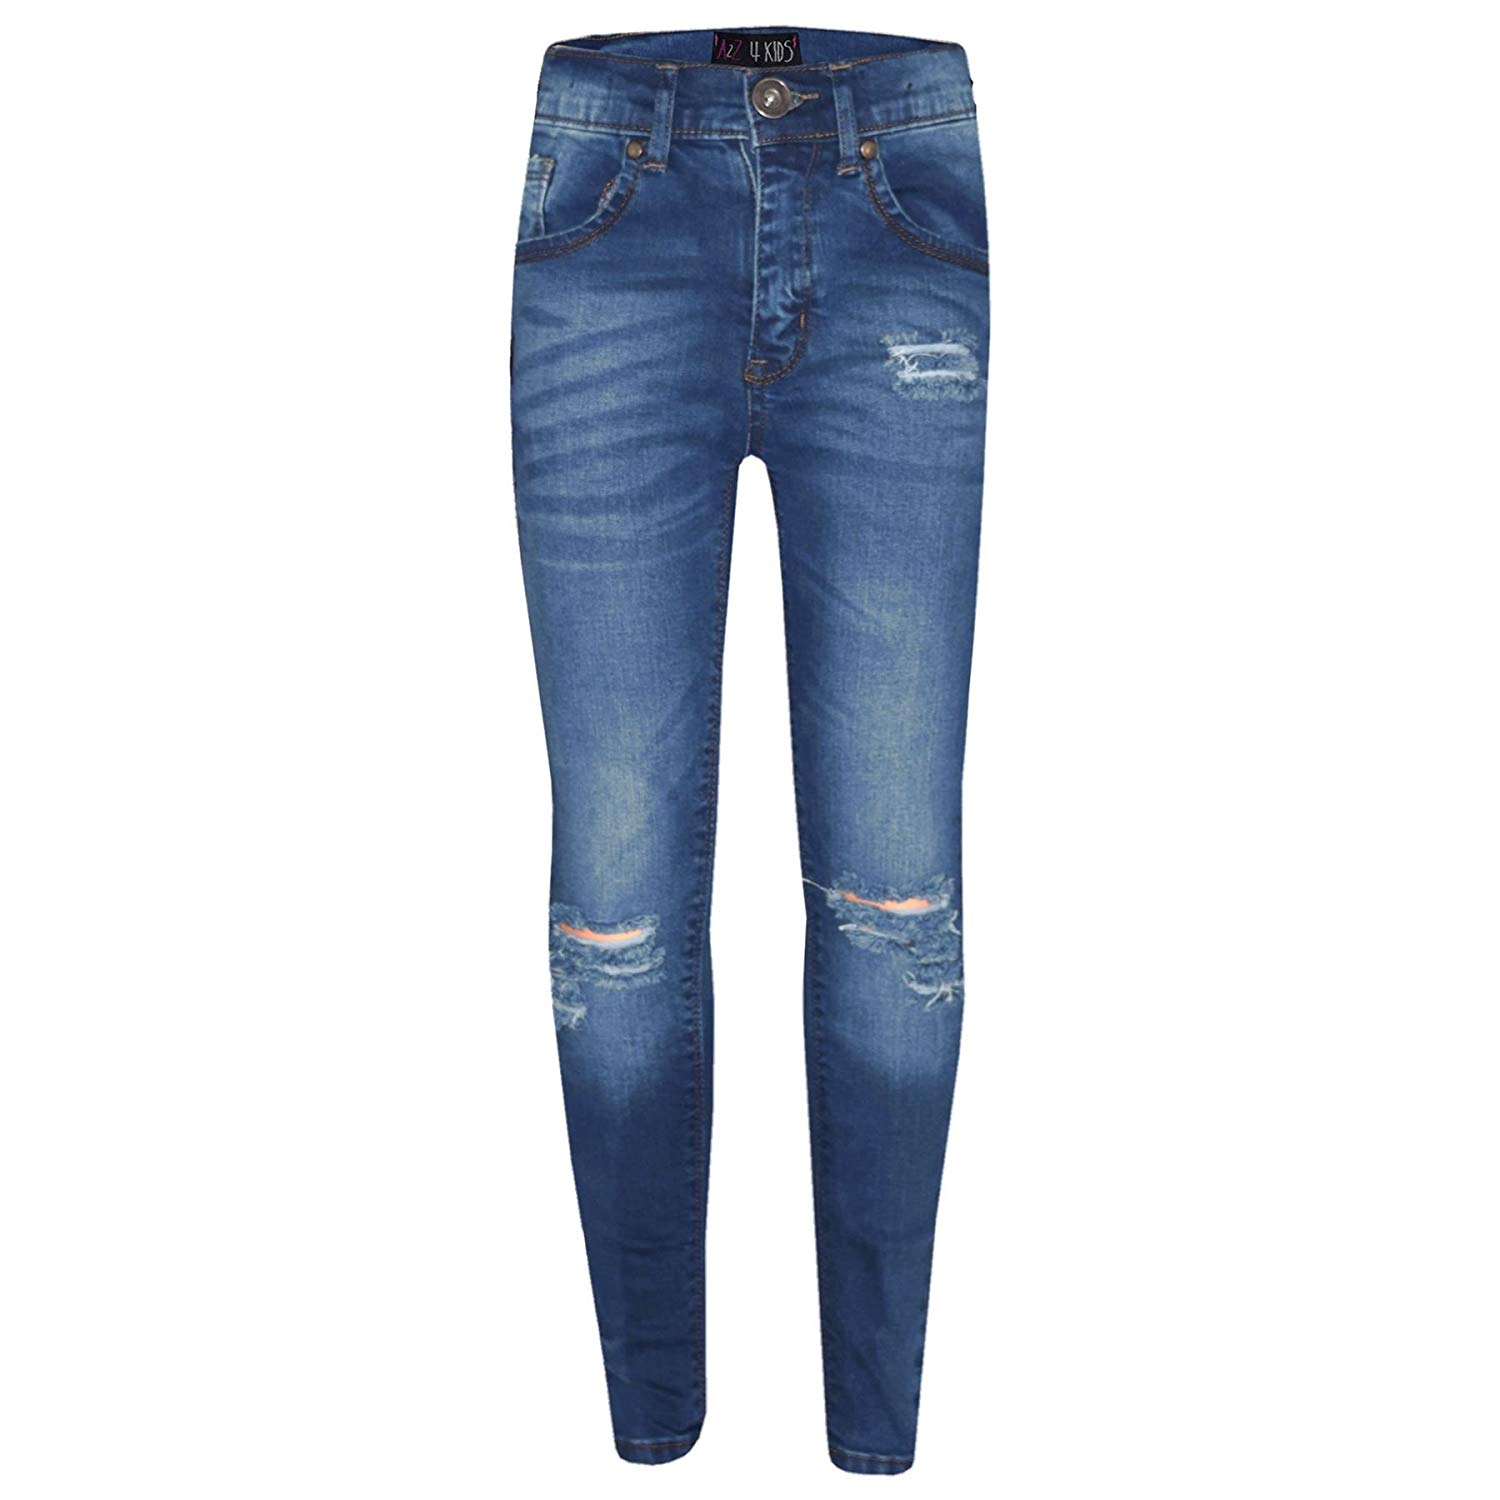 f8fc4a1d1f7c4 A2Z 4 Kids® Girls Stretchy Jeans Kids Ripped Denim Pants Trousers Jeggings  Age 5-